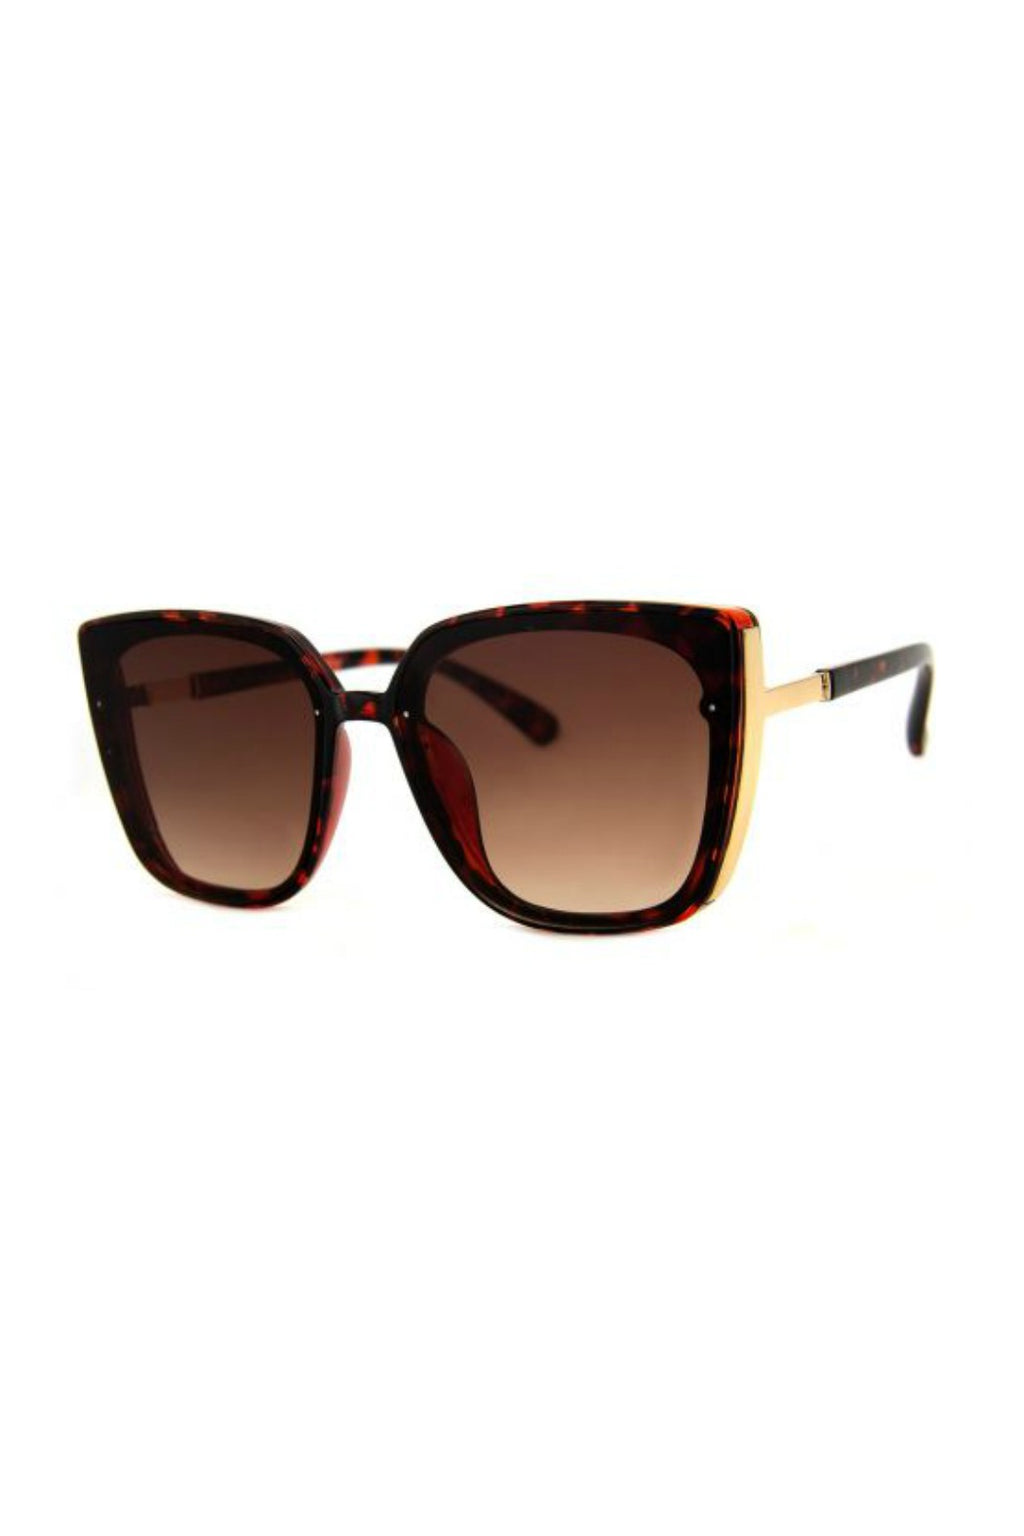 Face It Sunnies - Tortoise